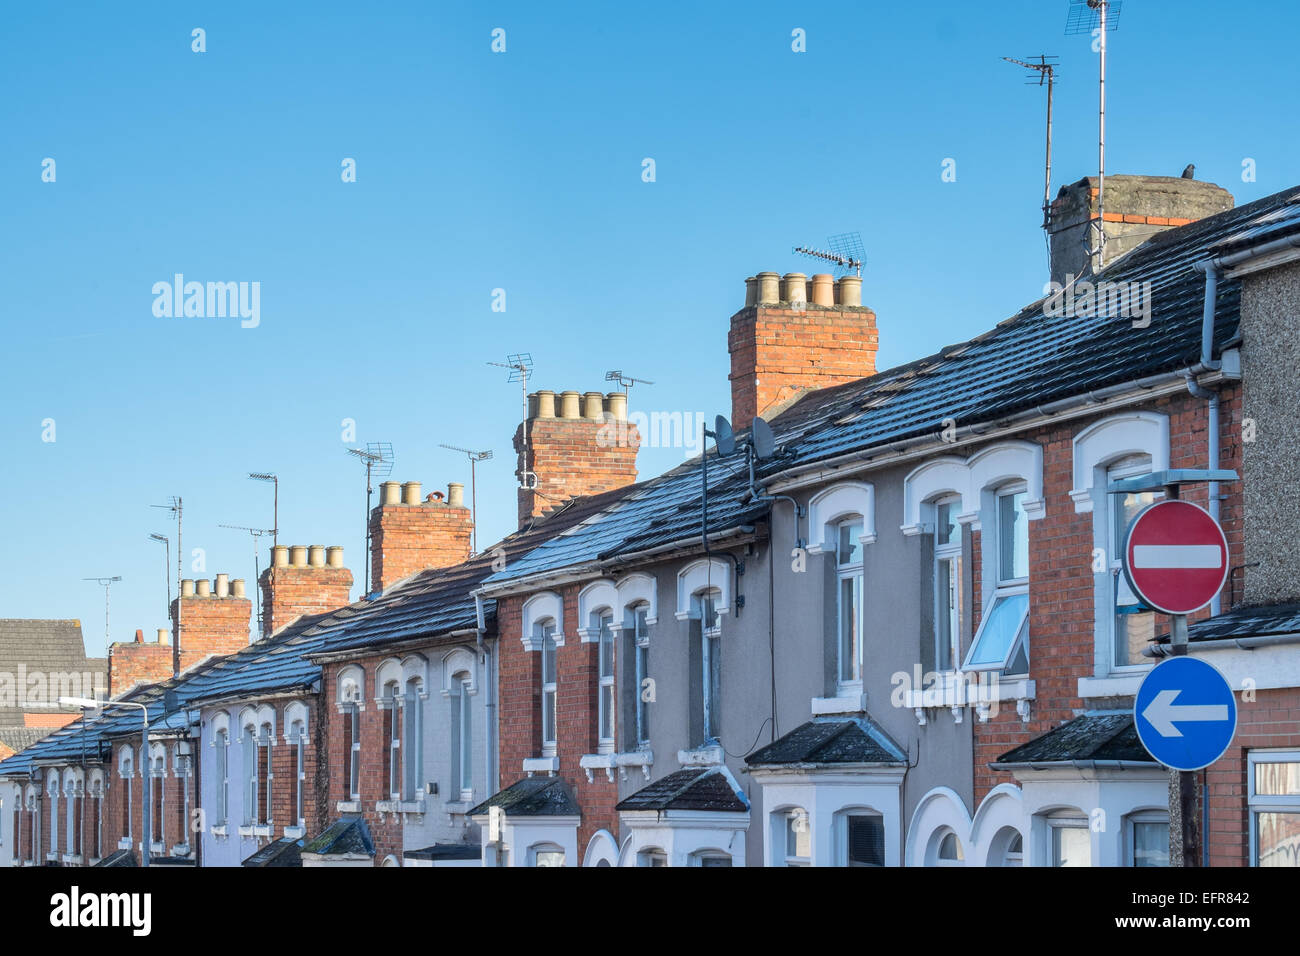 The frontages, rooftops, chimneys & TV aerials of  typical Victorian, terraced homes in a UK, Suburban street - Stock Image